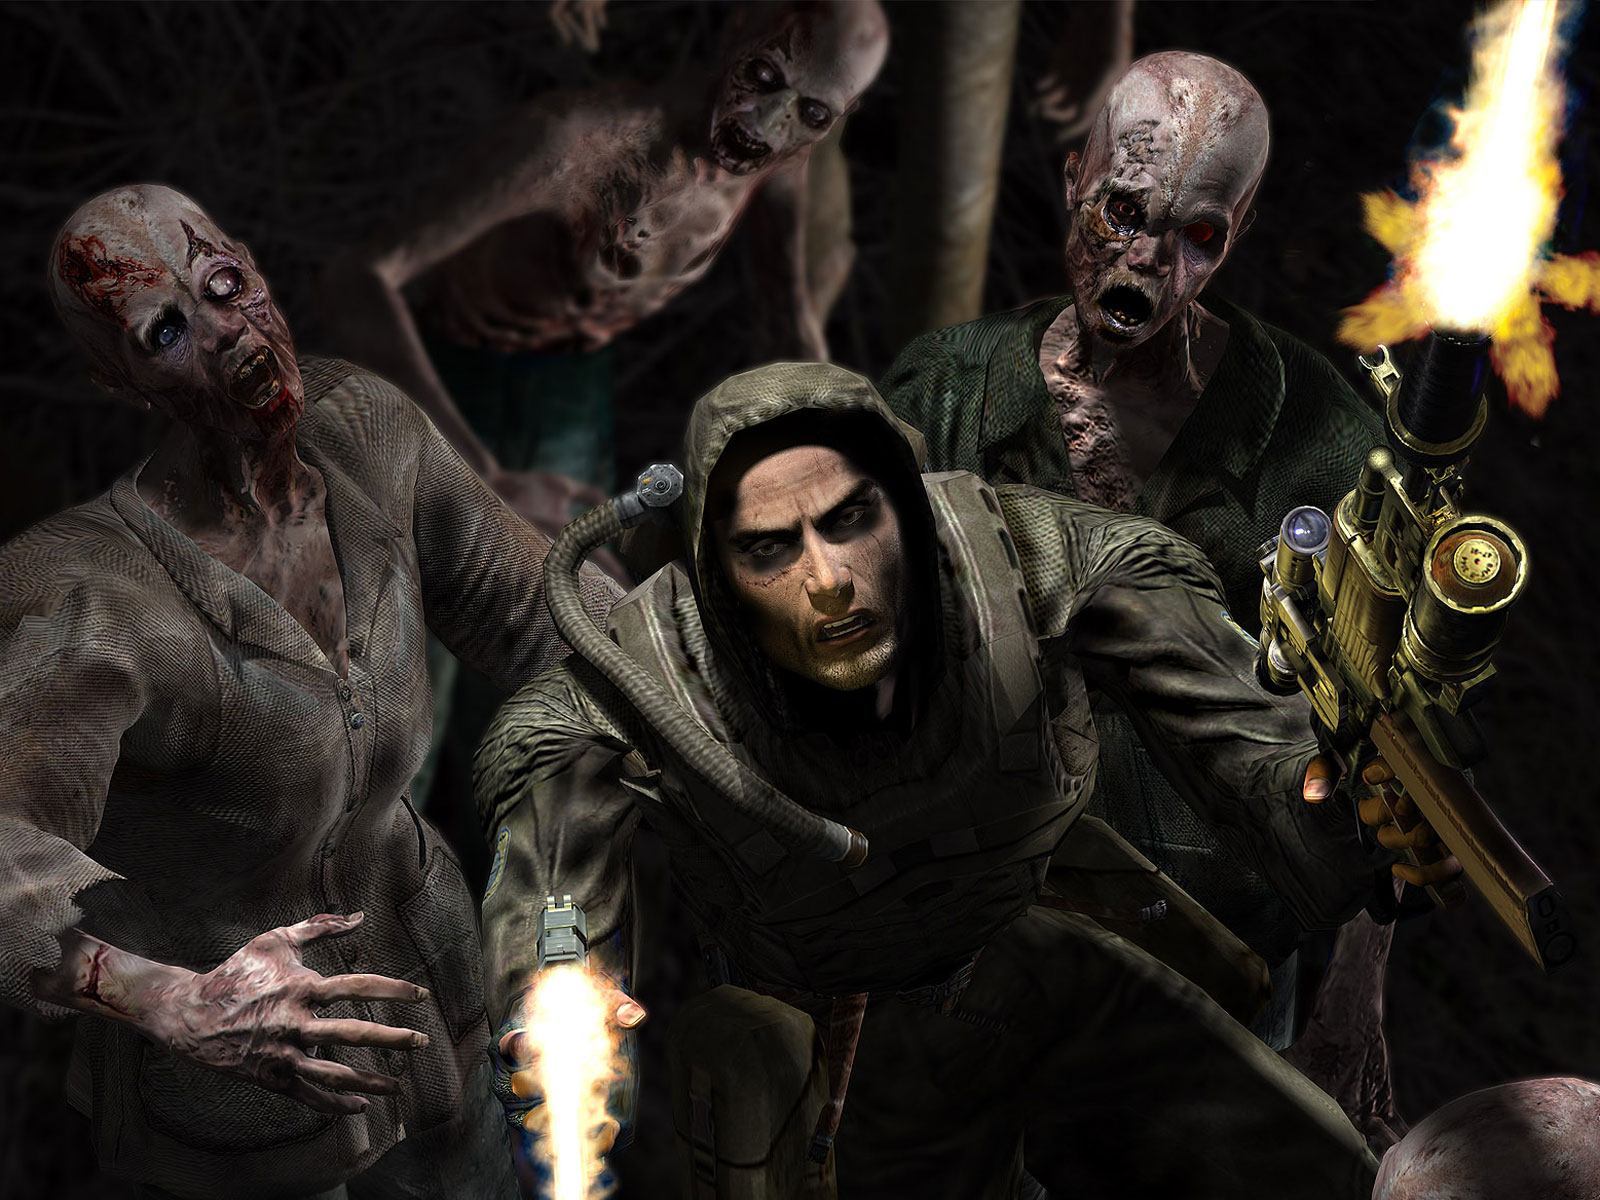 Scary Wallpaper - Zombie | Scary Wallpapers